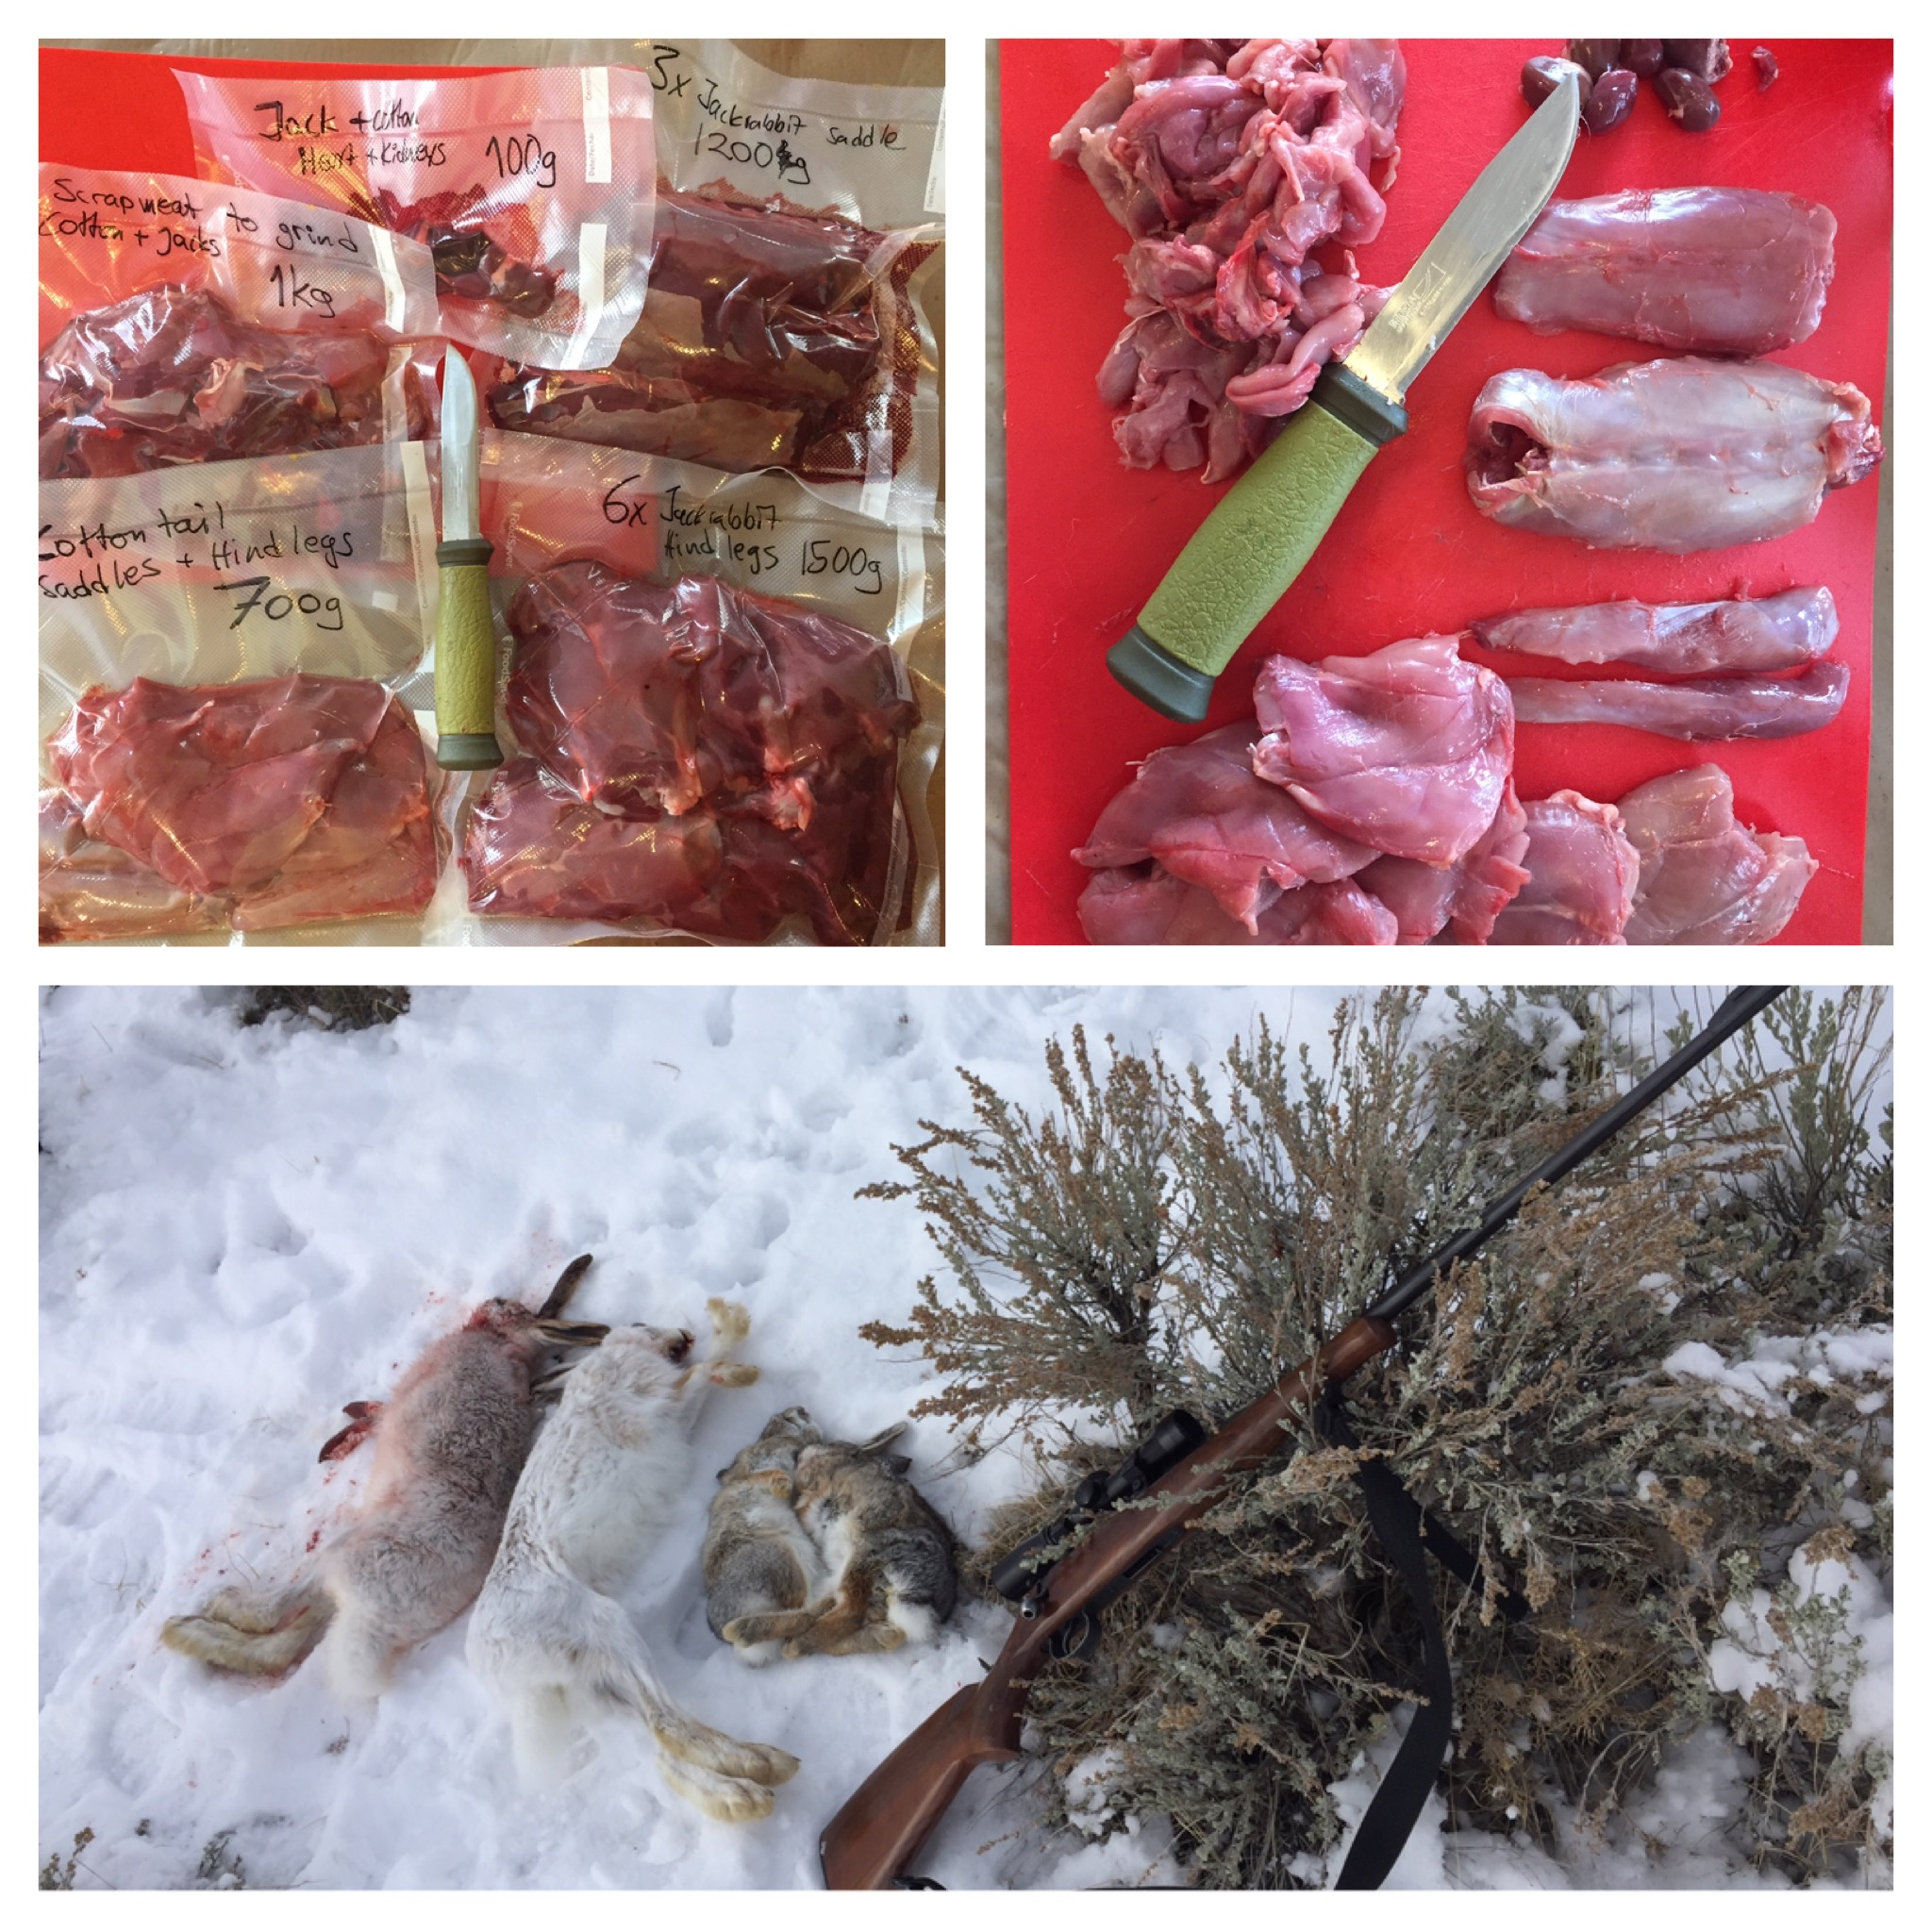 My traditional 1-day-after-elk-season rabbit hunt, which after 1 hour had given me jackrabbit for Swedish meatballs and some cottontail rabbits that are still waiting in the freezer. After vacuum packing the rabbits they aged for  40°C day grades (which in my fridge equals roughly about 10 days).